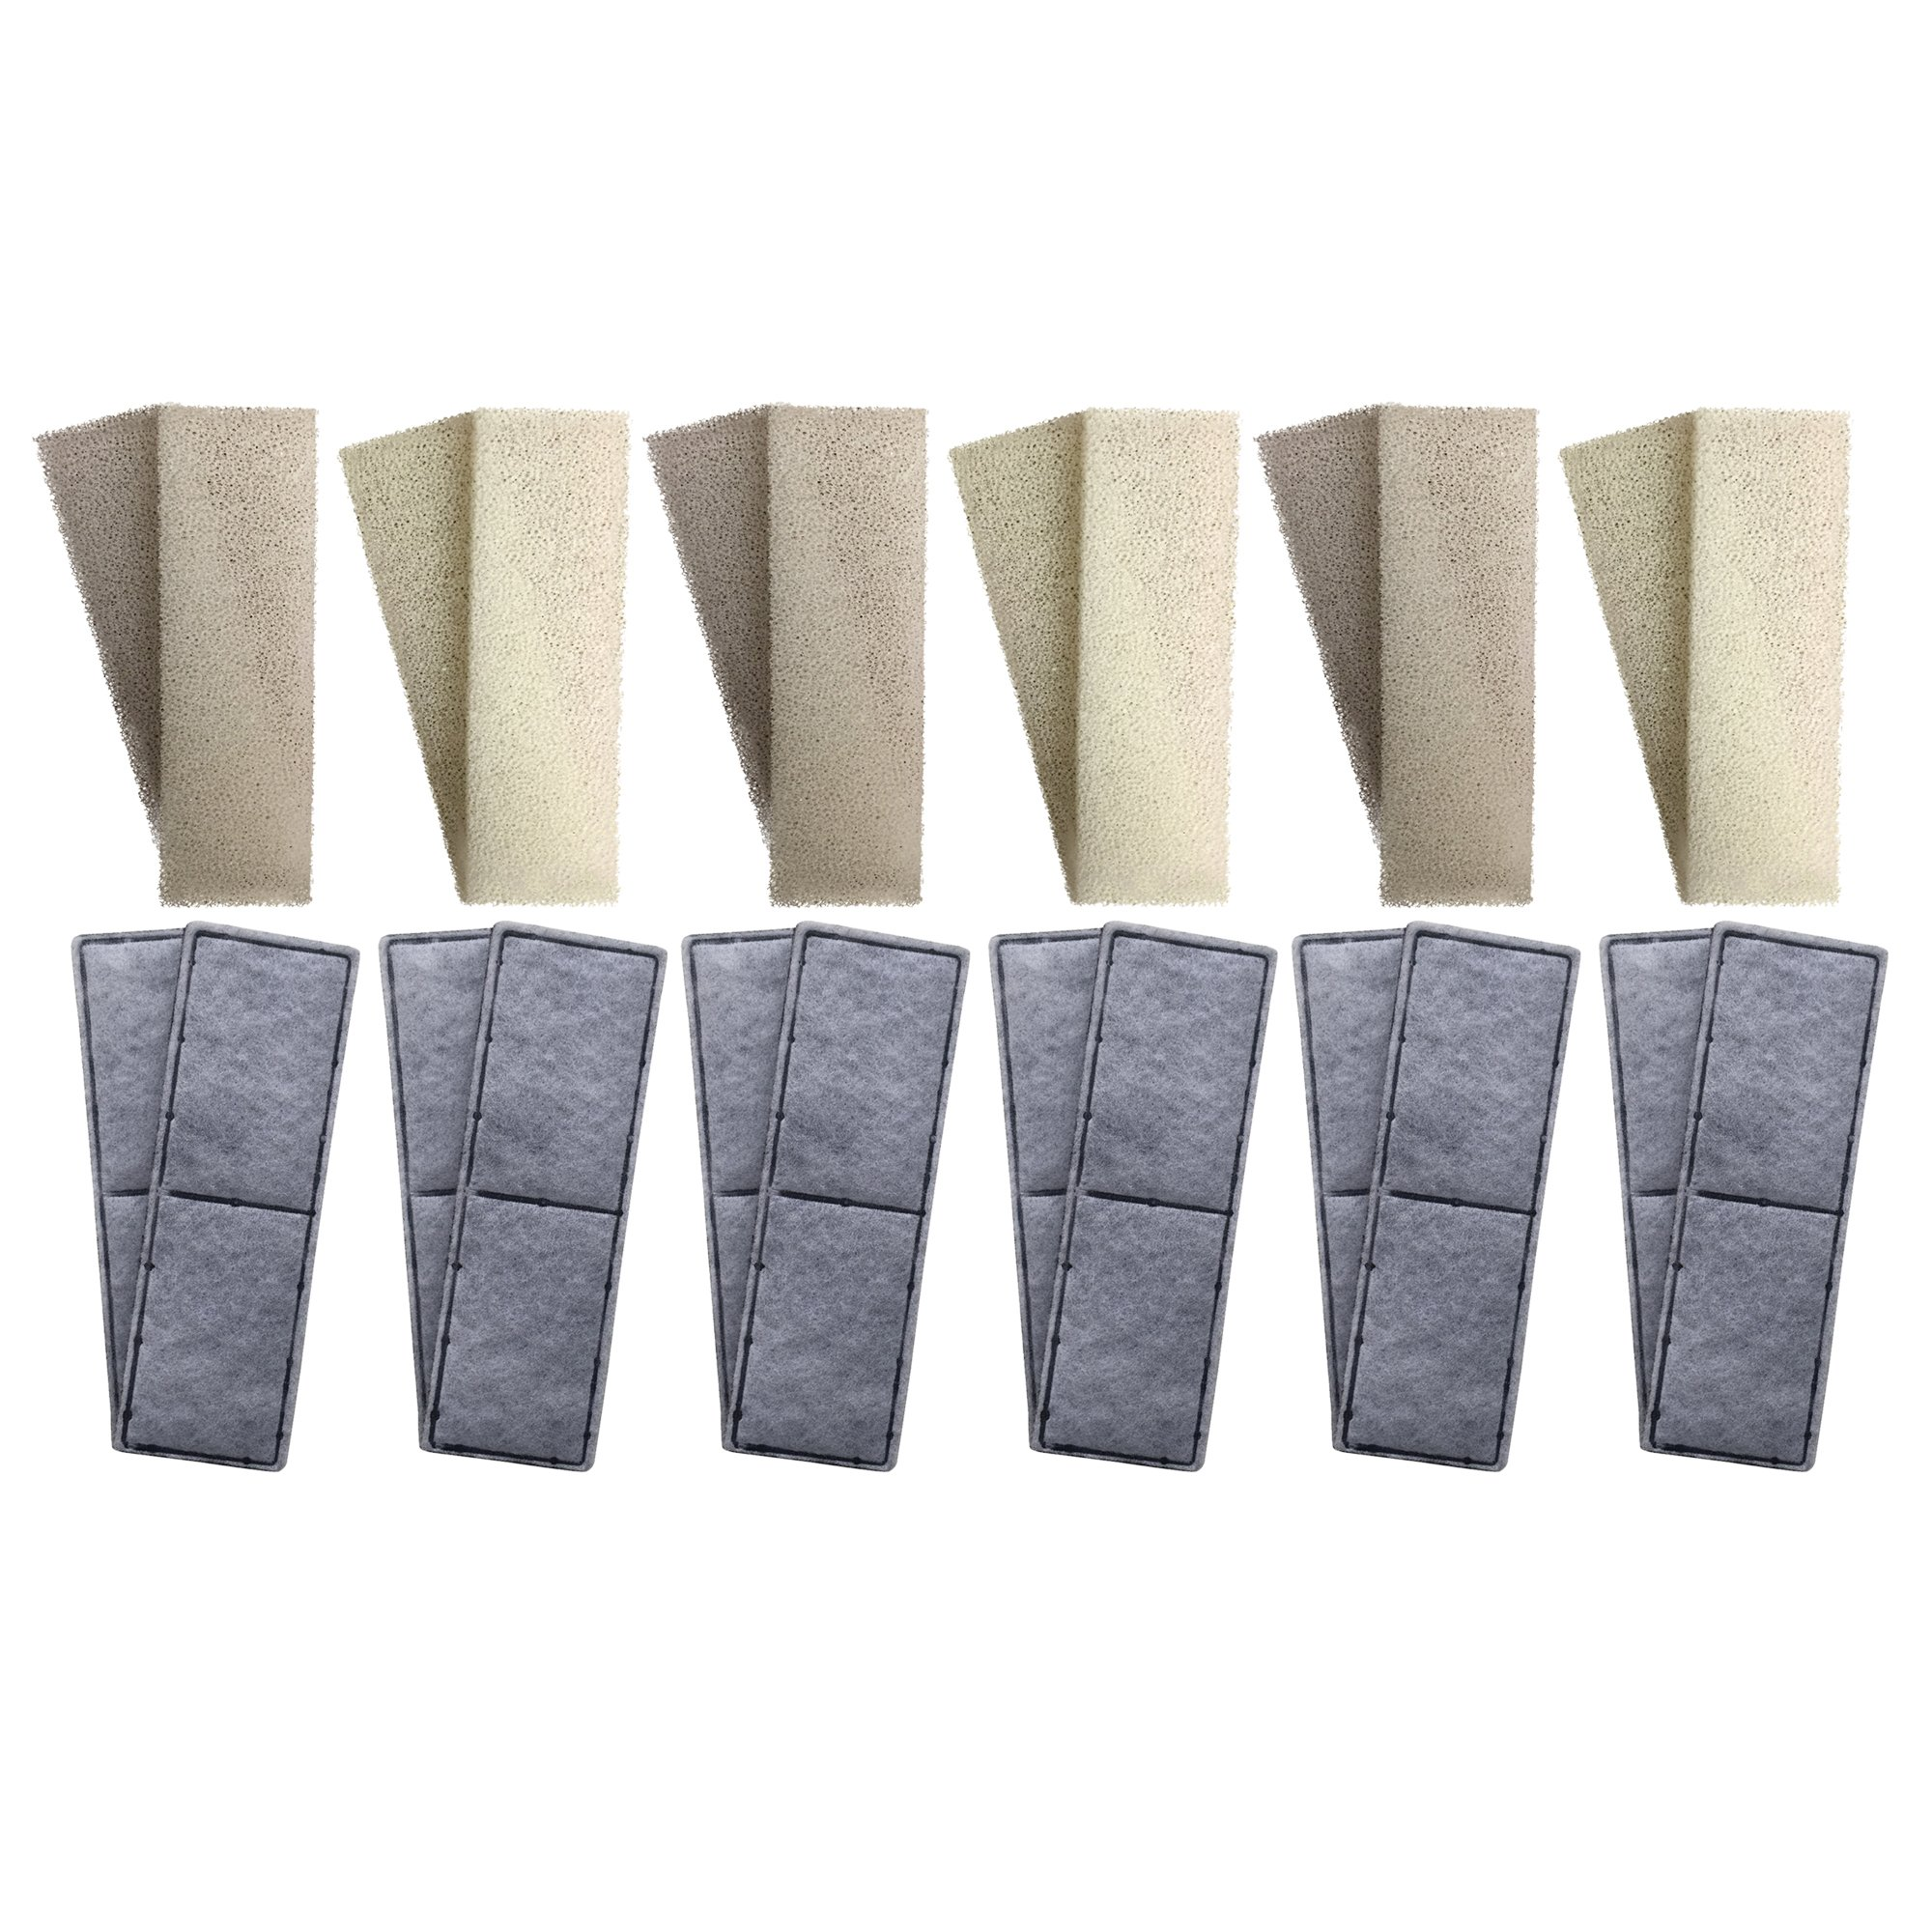 Finest-Filters 12 x Compatible Foam And 12 x Compatible Polycarbon Carbon Filter Cartridges To Fit Fluval U3 Internal